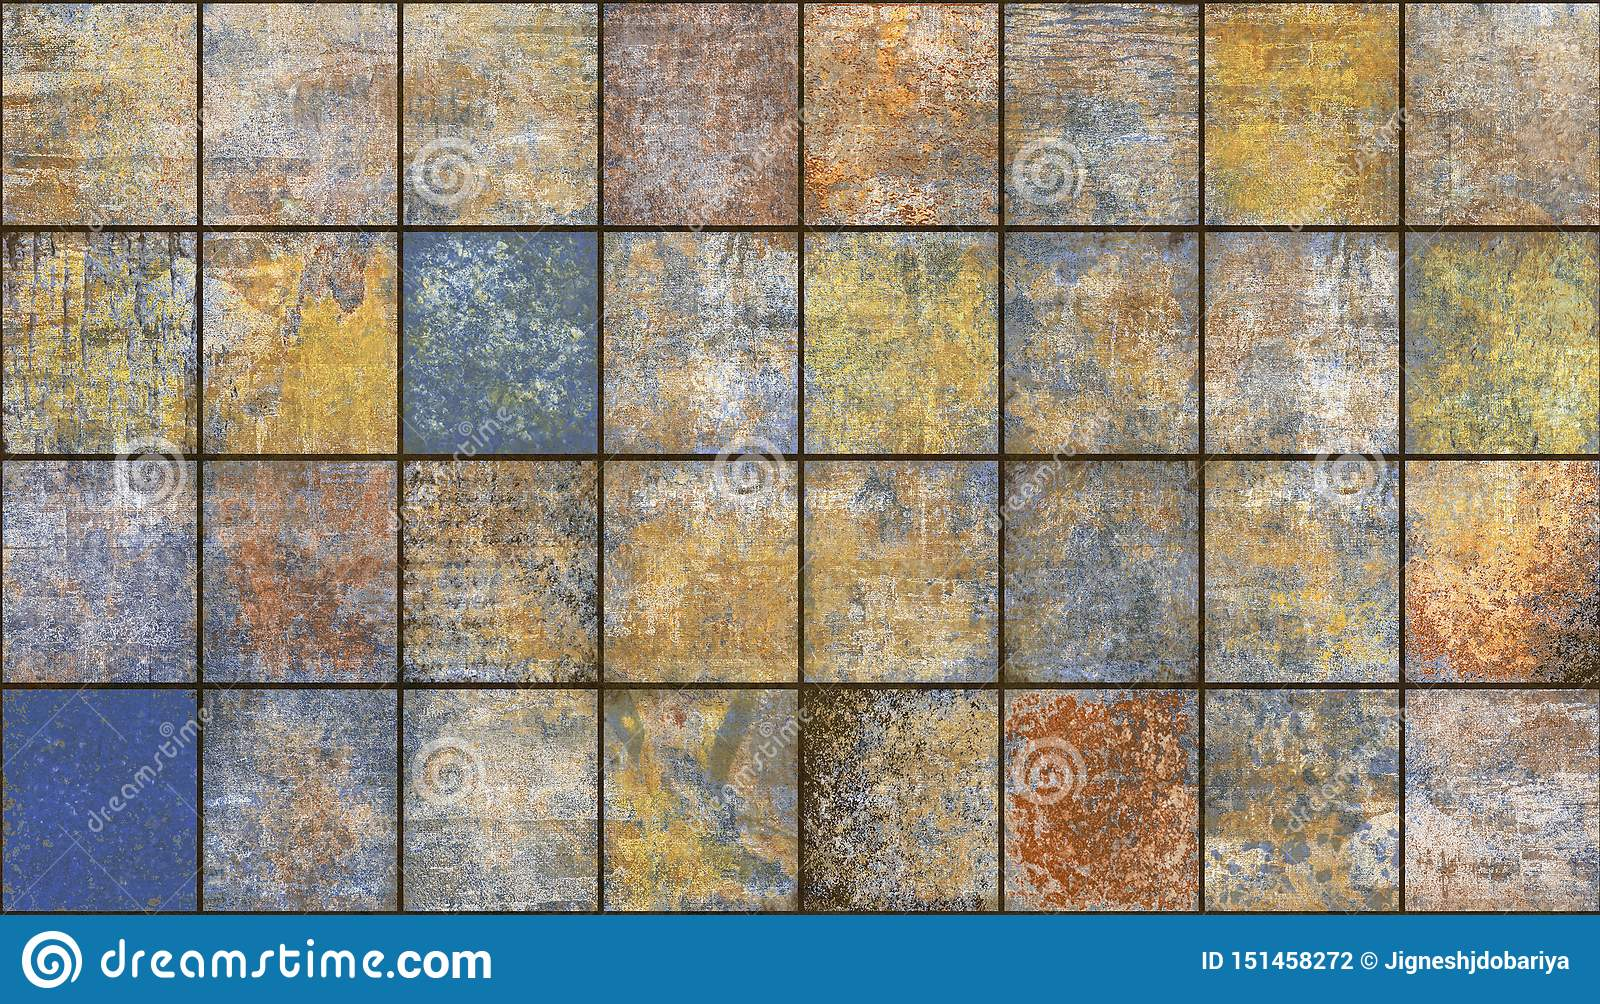 Abstract Home Decorative Wall Tiles Pattern Design Background Interior Decorative Design Wall Tiles Decor For Kitchen Stock Photo Image Of Grunge Architecture 151458272